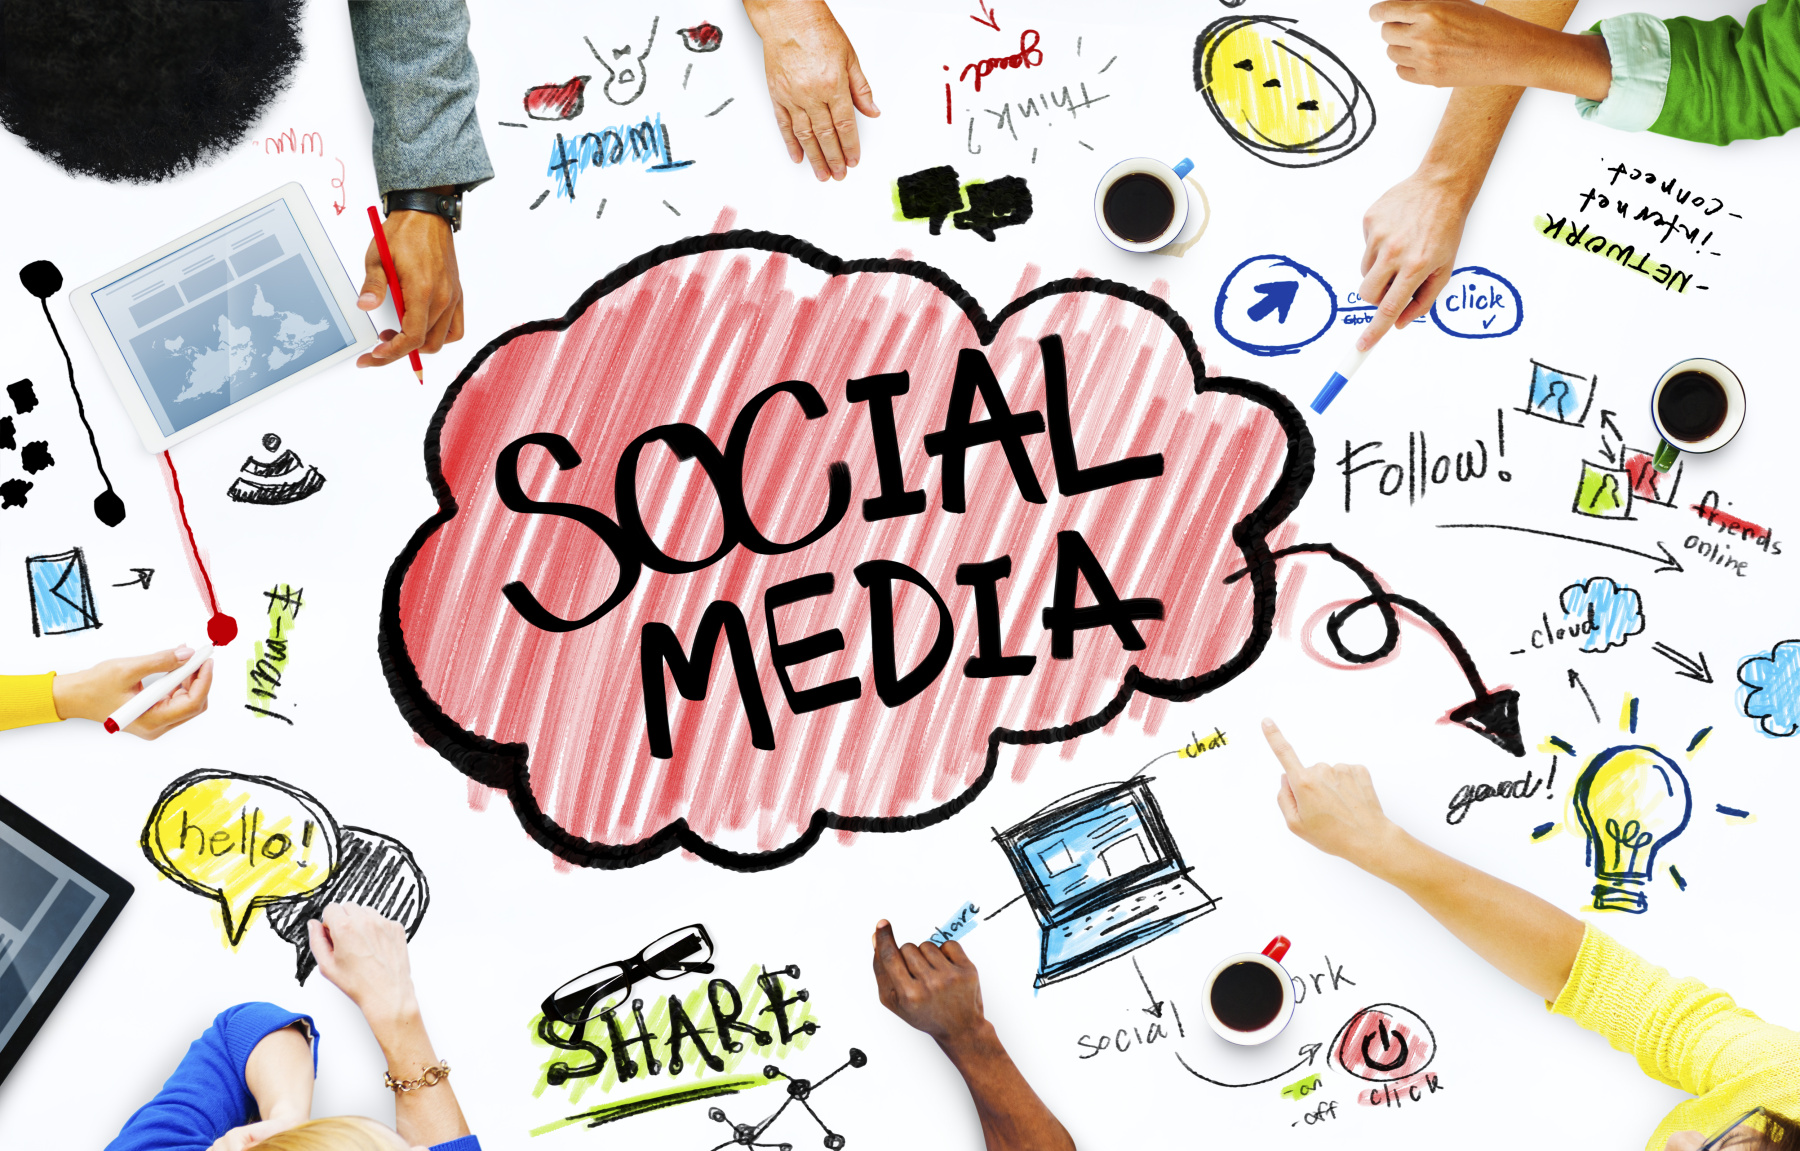 5 SIGNS YOU NEED A SOCIAL MEDIA MANAGER